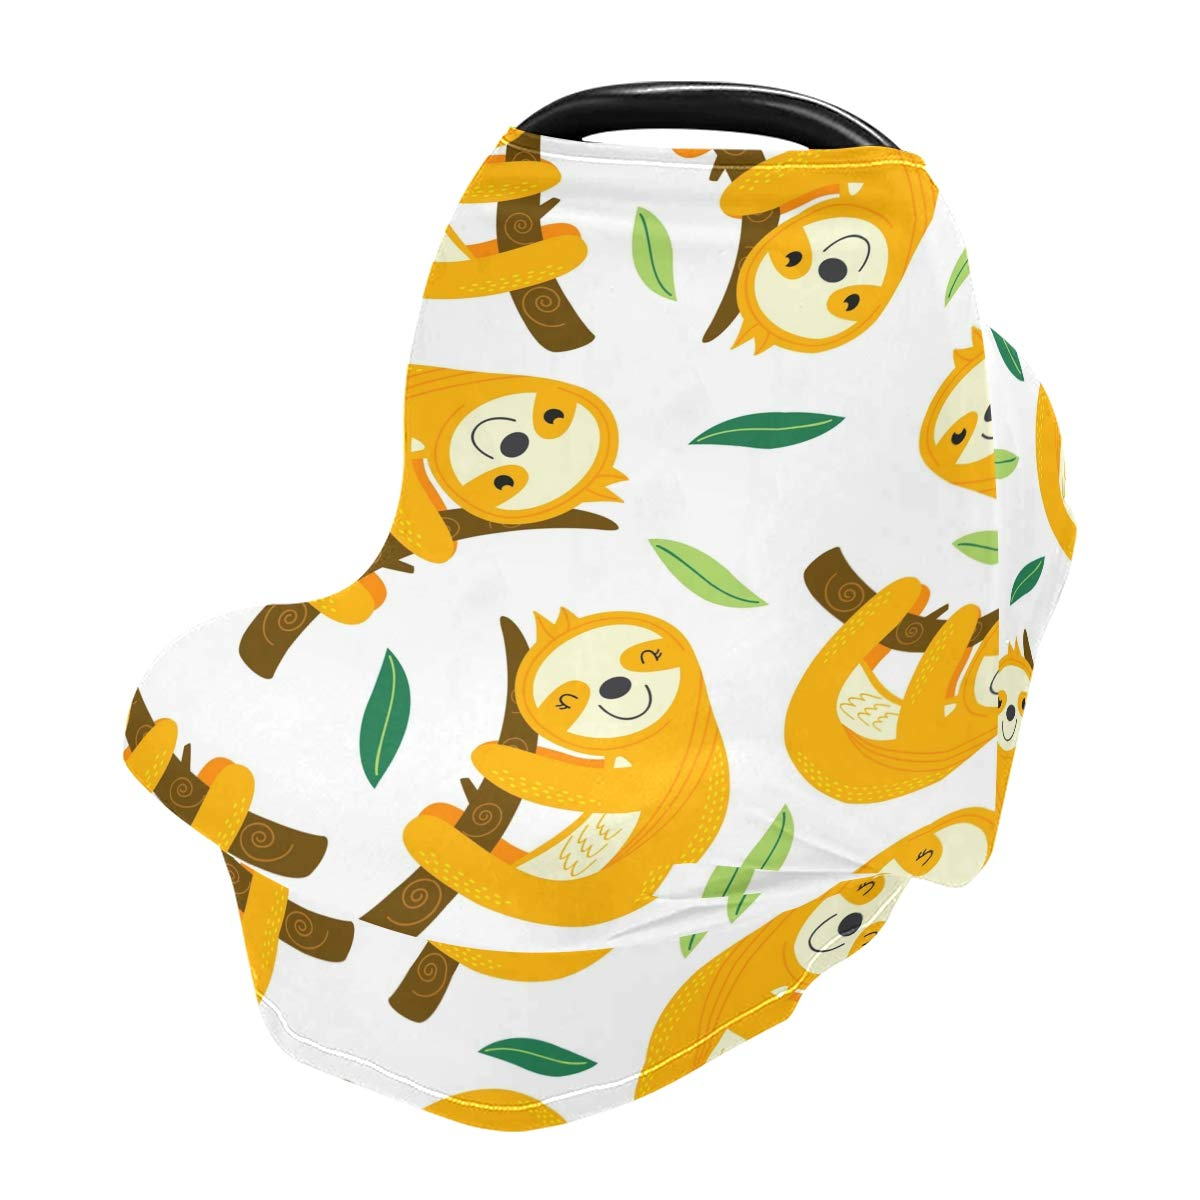 Nursing Cover Breastfeeding Scarf Sloth - Baby Car Seat Covers, Infant Stroller Cover, Carseat Canopy for Girls and Boys(801c)